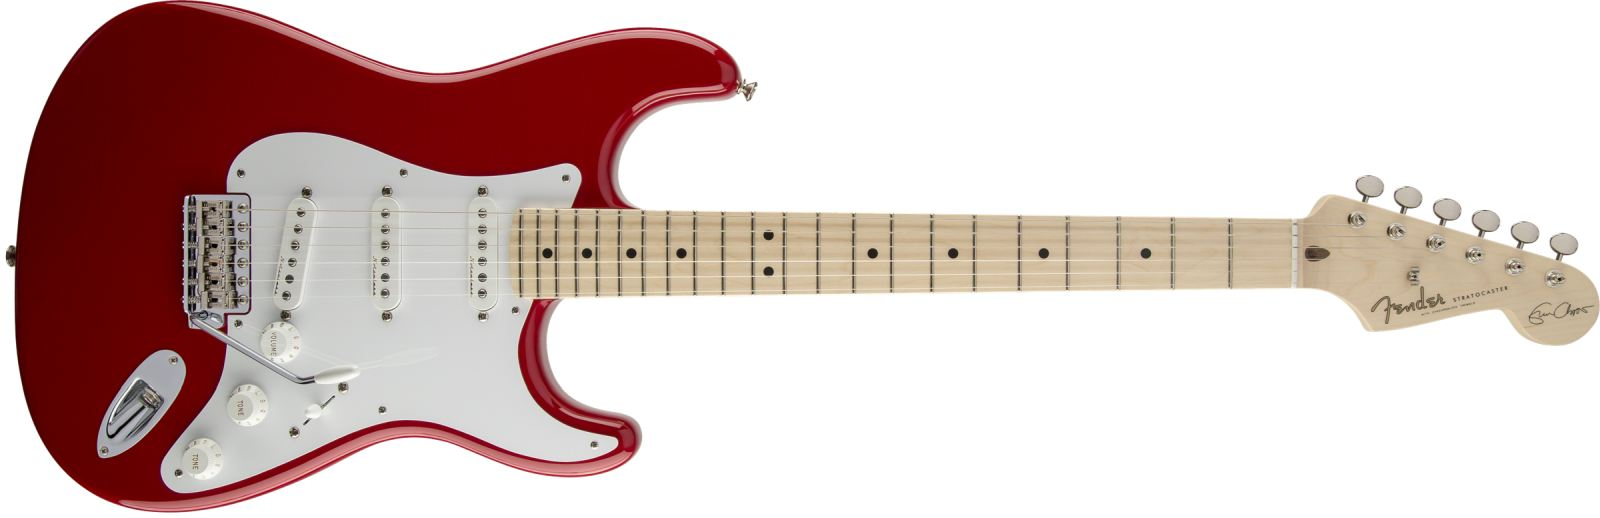 Fender Eric Clapton Signature Stratocaster MN TRD